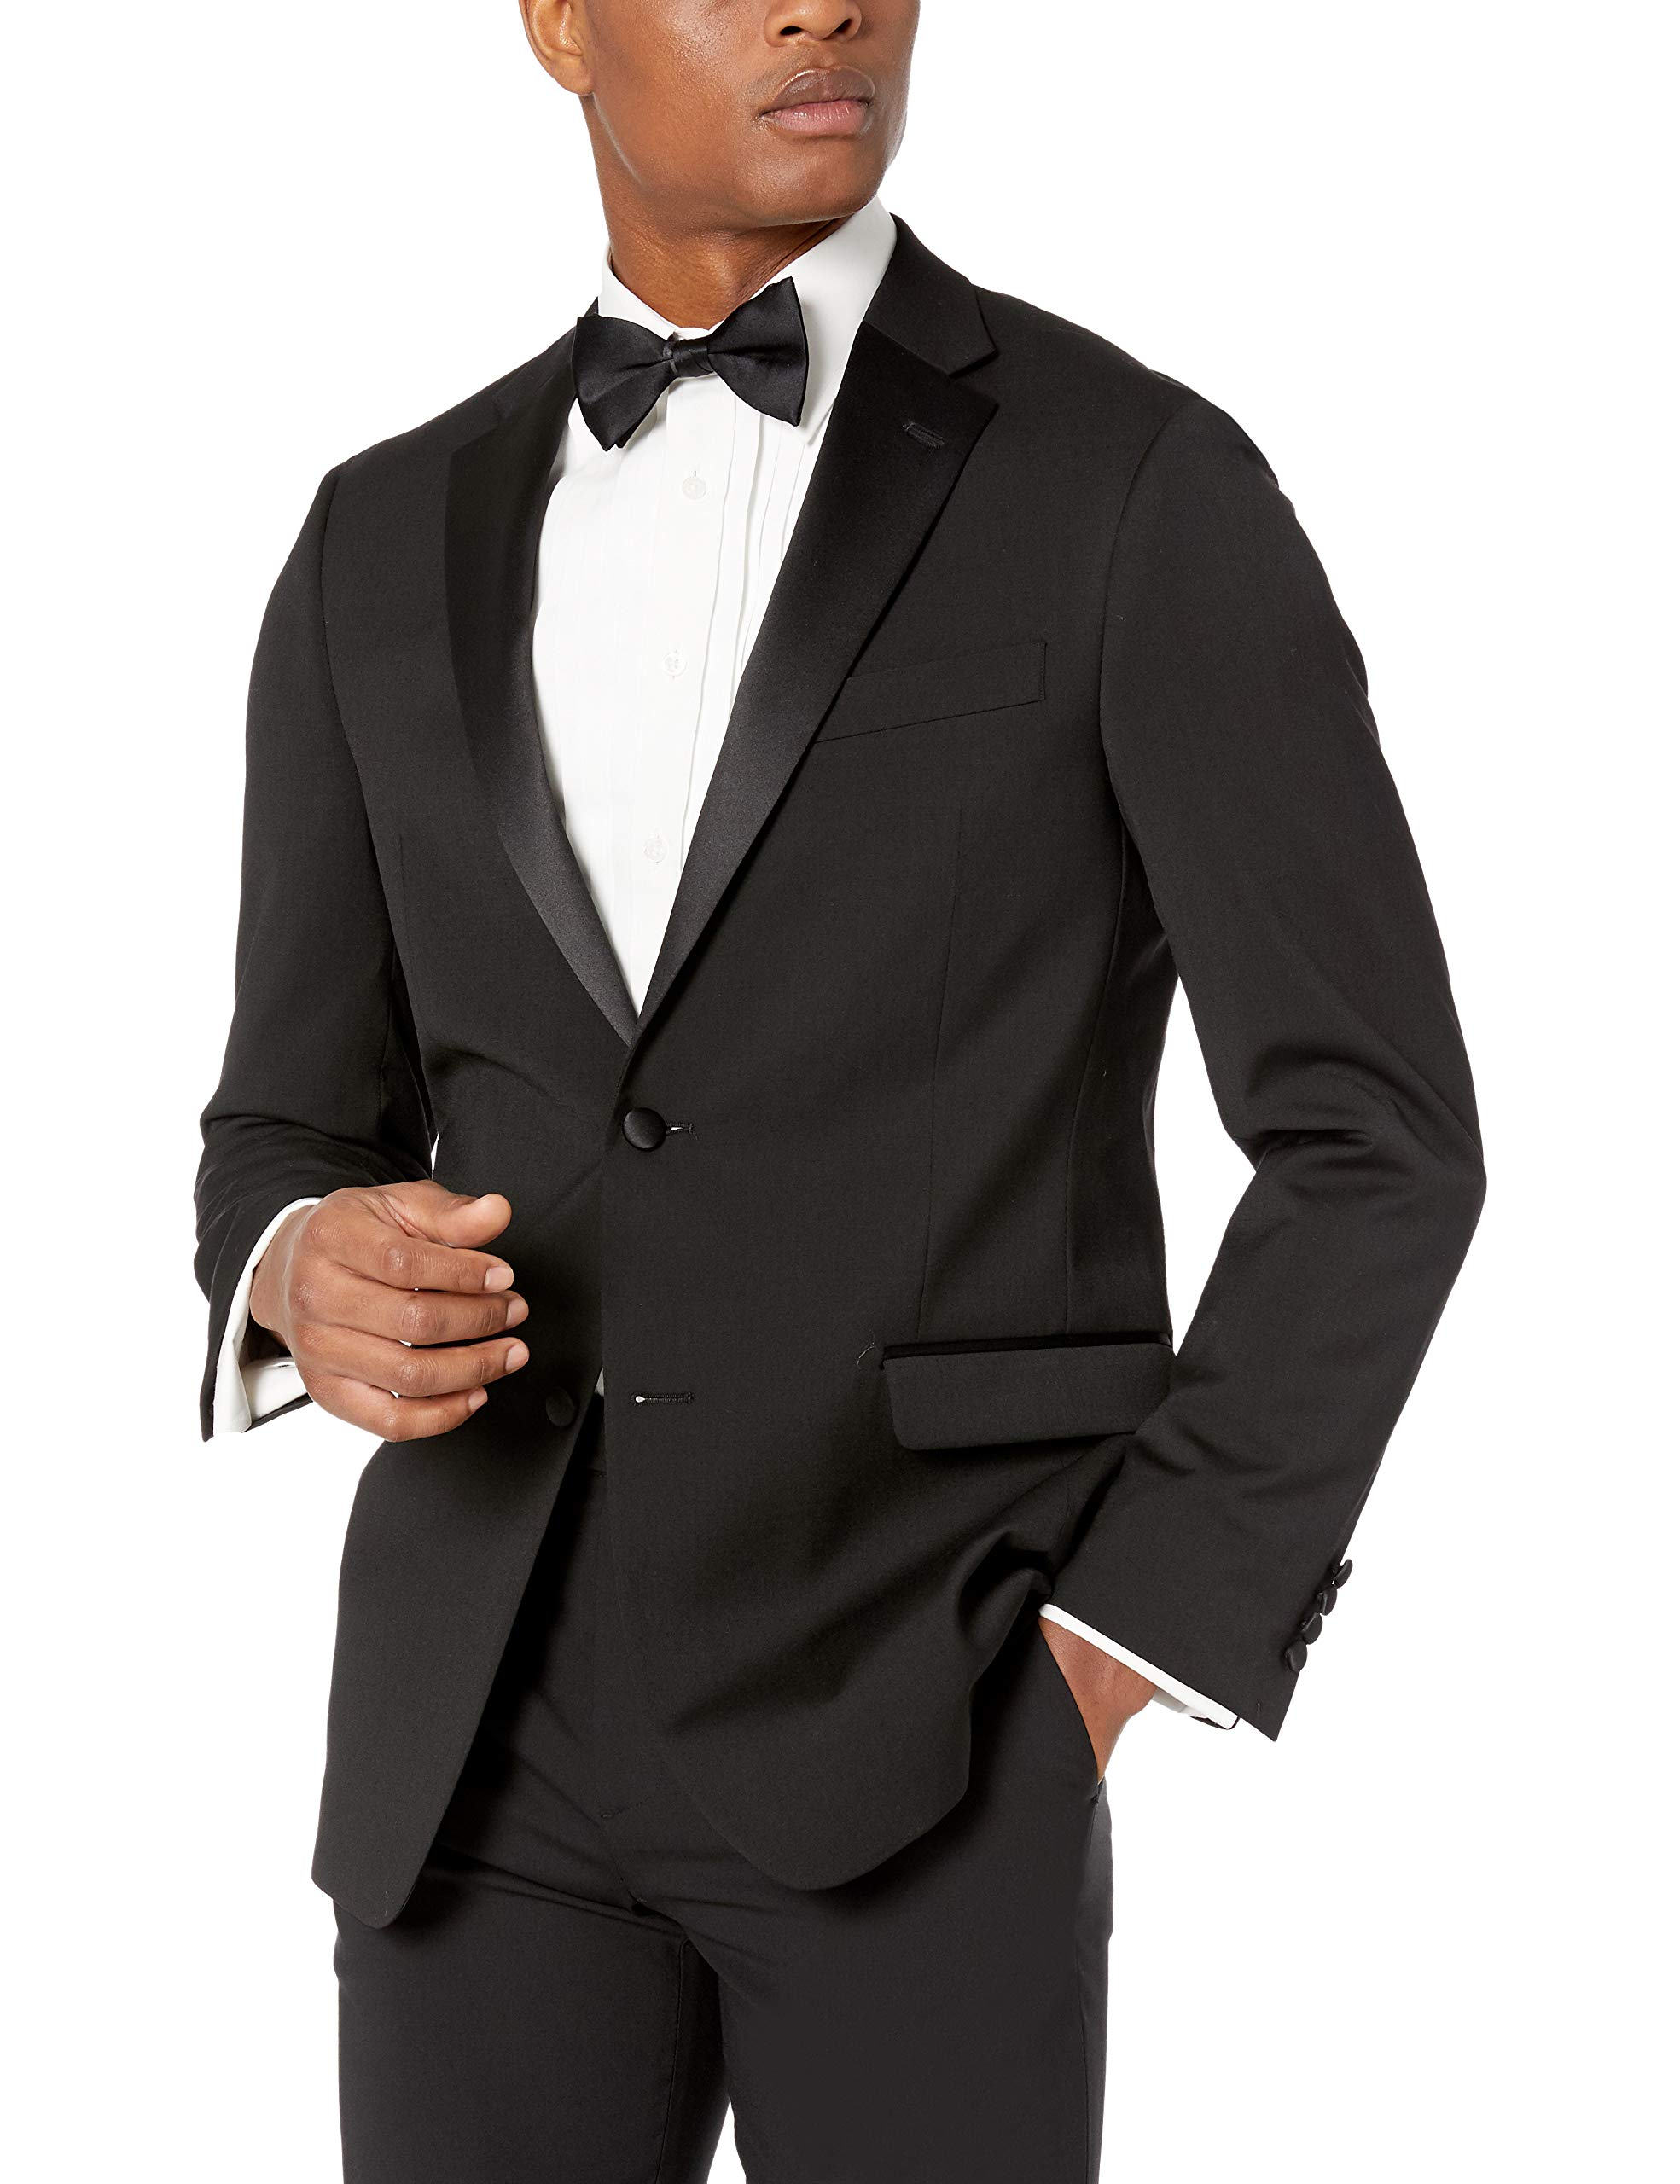 Tommy Hilfiger Men's Big and Tall Modern Fit Wool Blend Tuxedo Separate (Blazer and Pant), Black, 50R